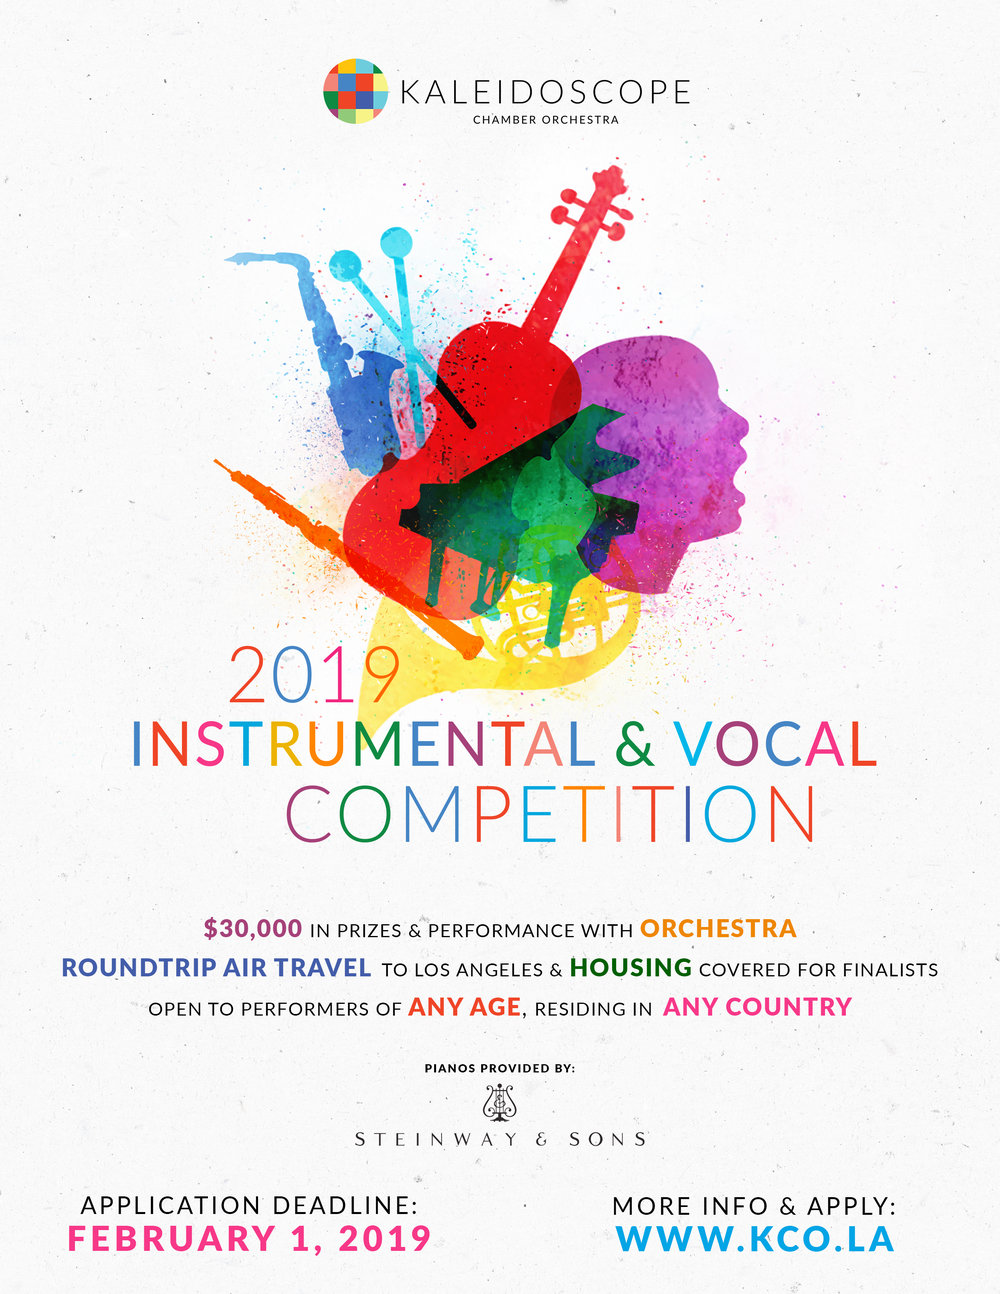 S5_Kaleidoscope_VocalInstrumentalCompetition_Flyer.jpg